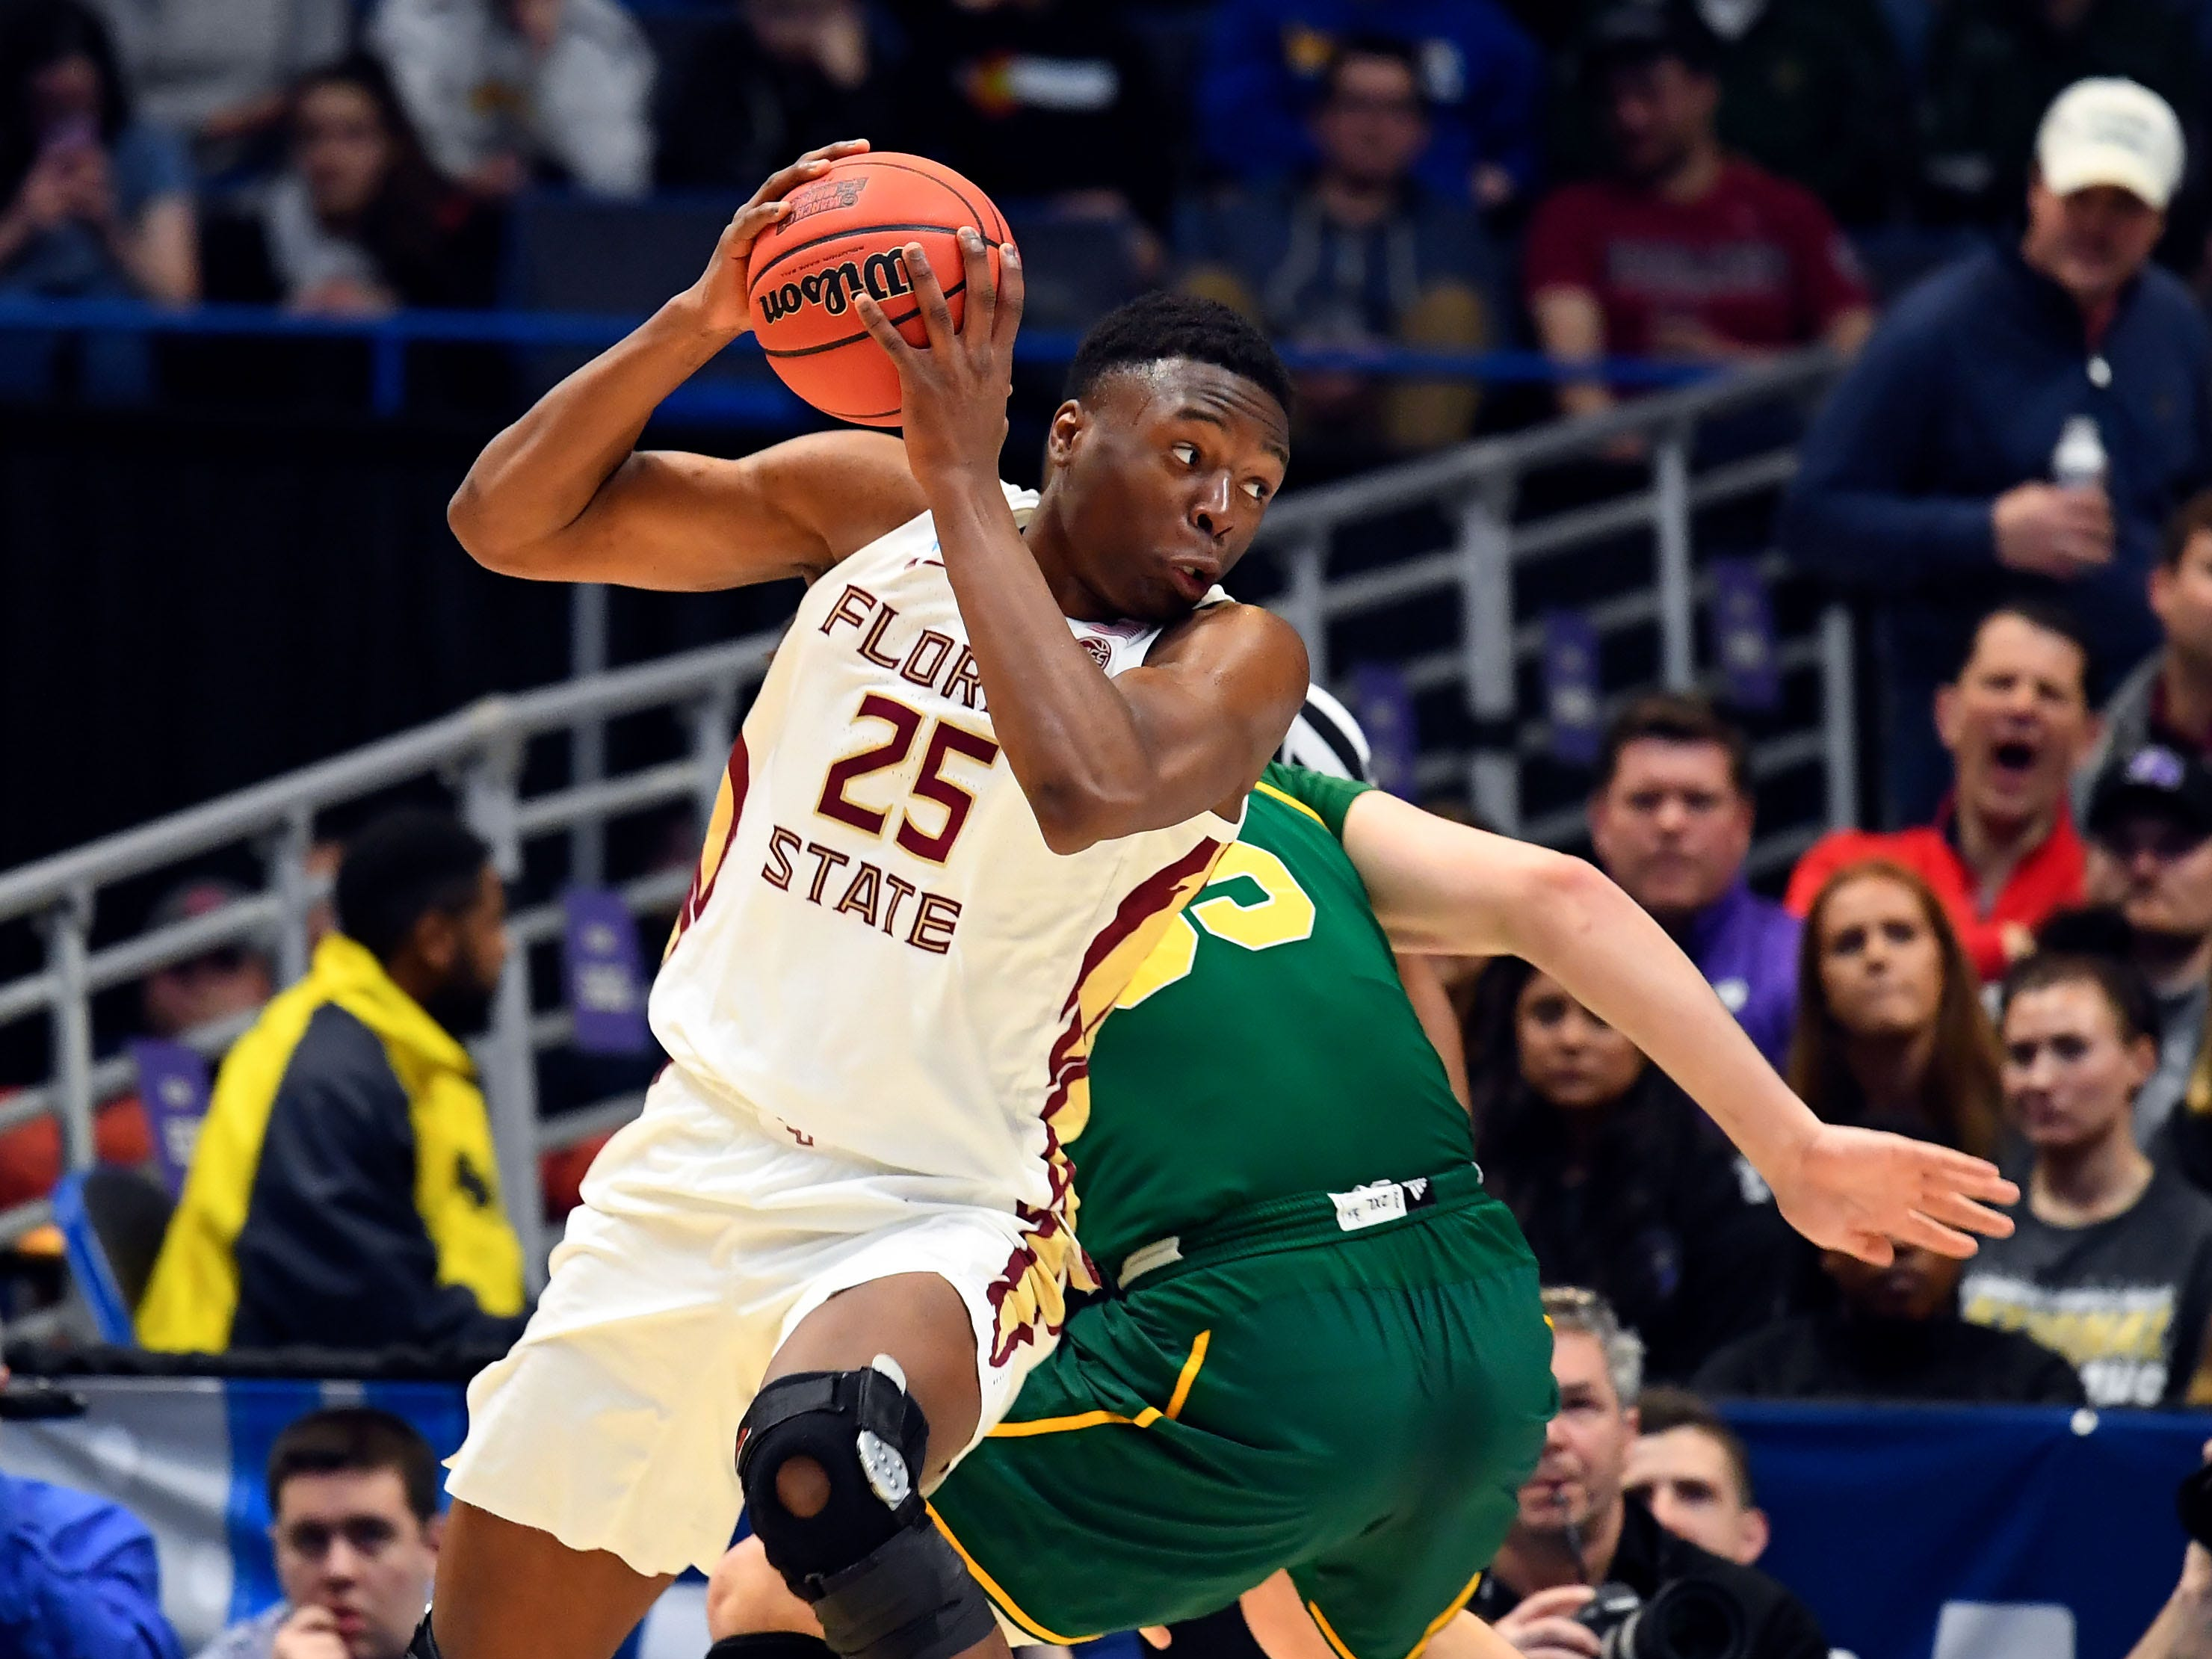 Mar 21, 2019; Hartford, CT, USA; Florida State Seminoles forward Mfiondu Kabengele (25) drives to the basket against the Vermont Catamounts during the first half of a game in the first round of the 2019 NCAA Tournament at XL Center. Mandatory Credit: Robert Deutsch-USA TODAY Sports